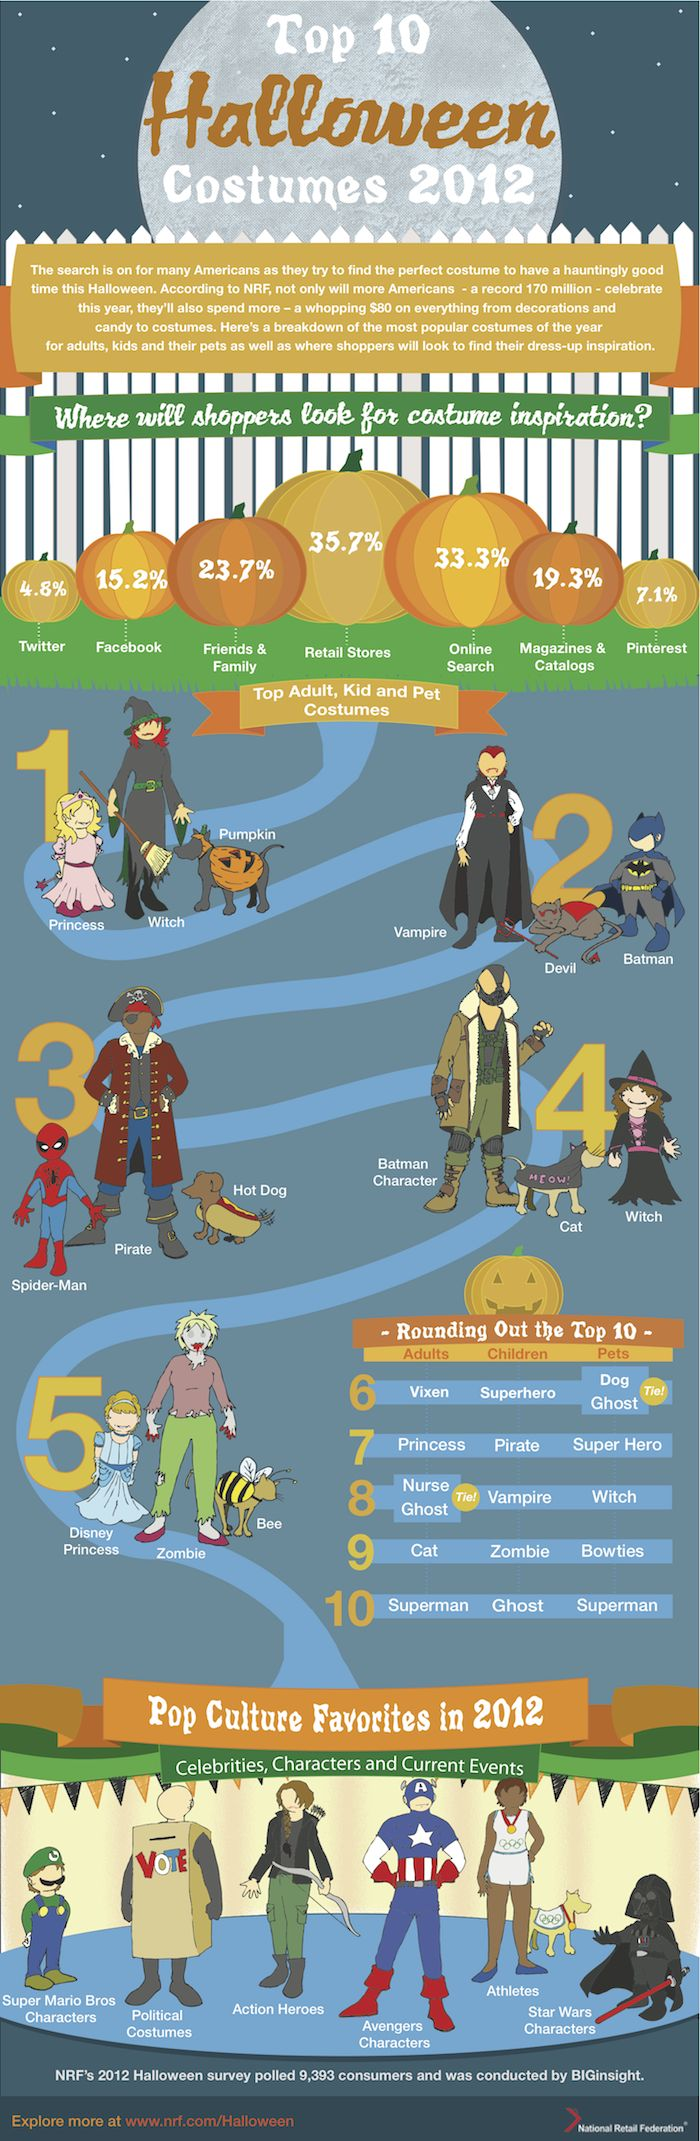 Top Halloween costumes for adults, kids and pets in 2012 – Infographic